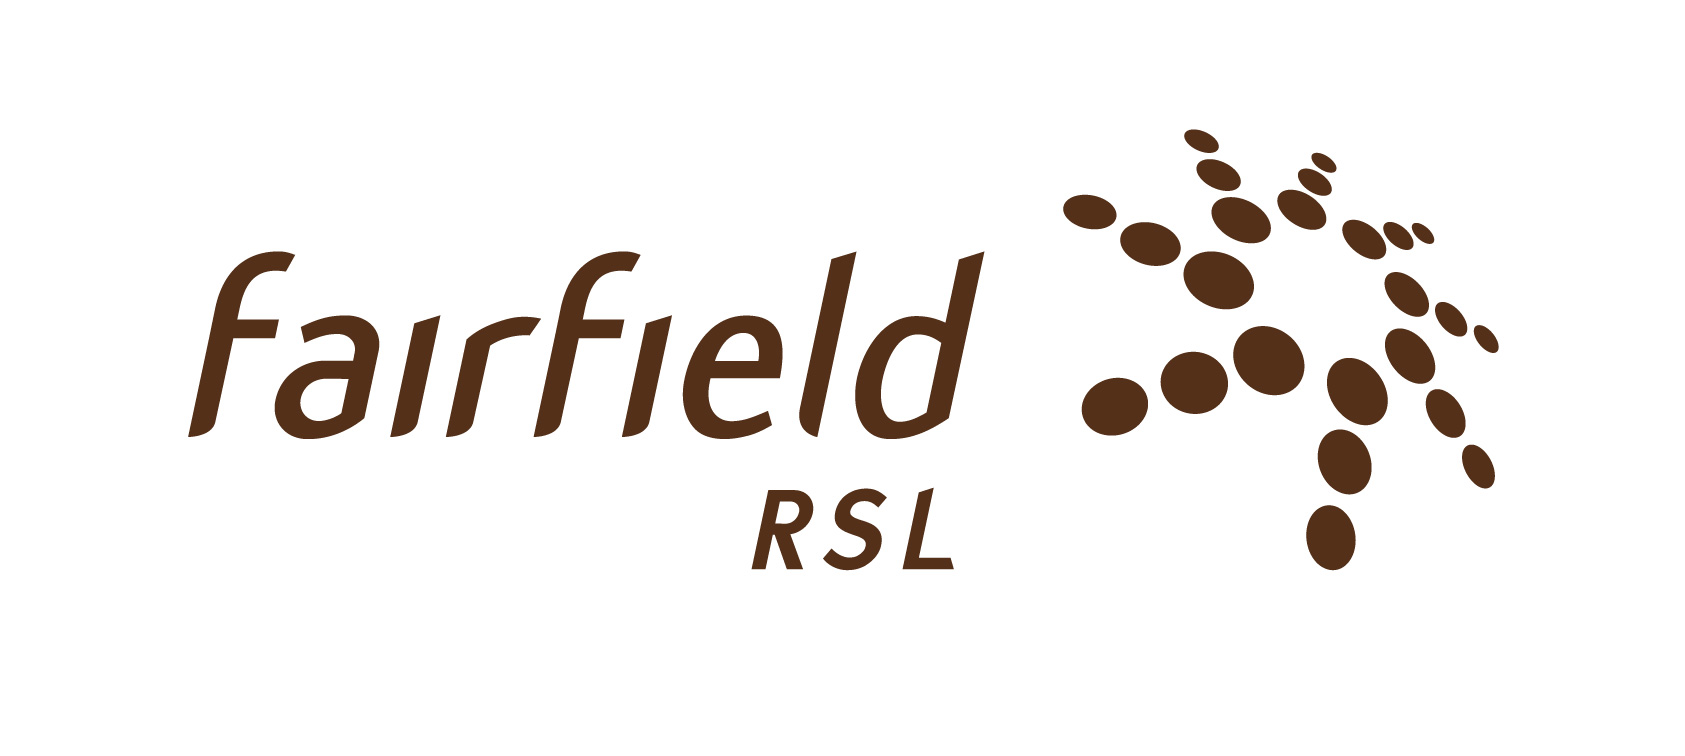 Fairfield RSL.jpg